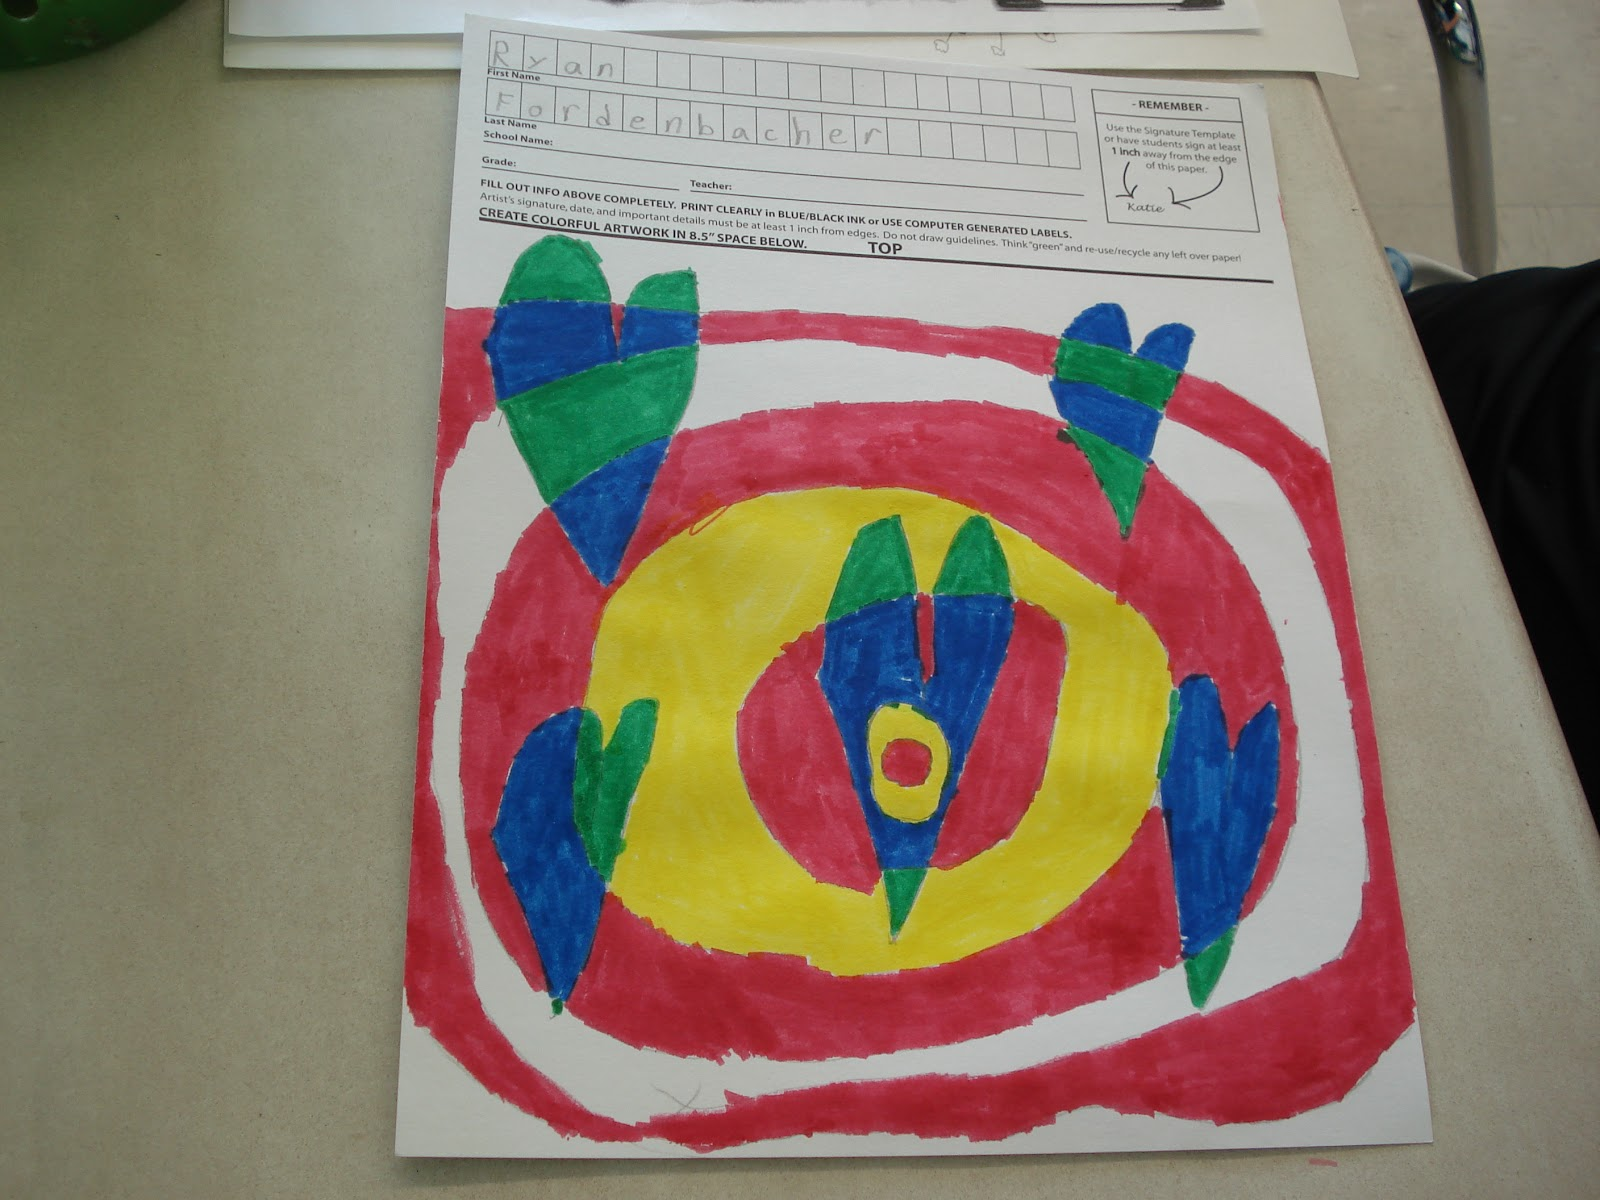 Op art uses color to create - If You Wondering Why So Many Heart Projects Well At My School We Do A Fund Raiser With A Company Called Square 1 Art This Year I Decided To Do A Heart